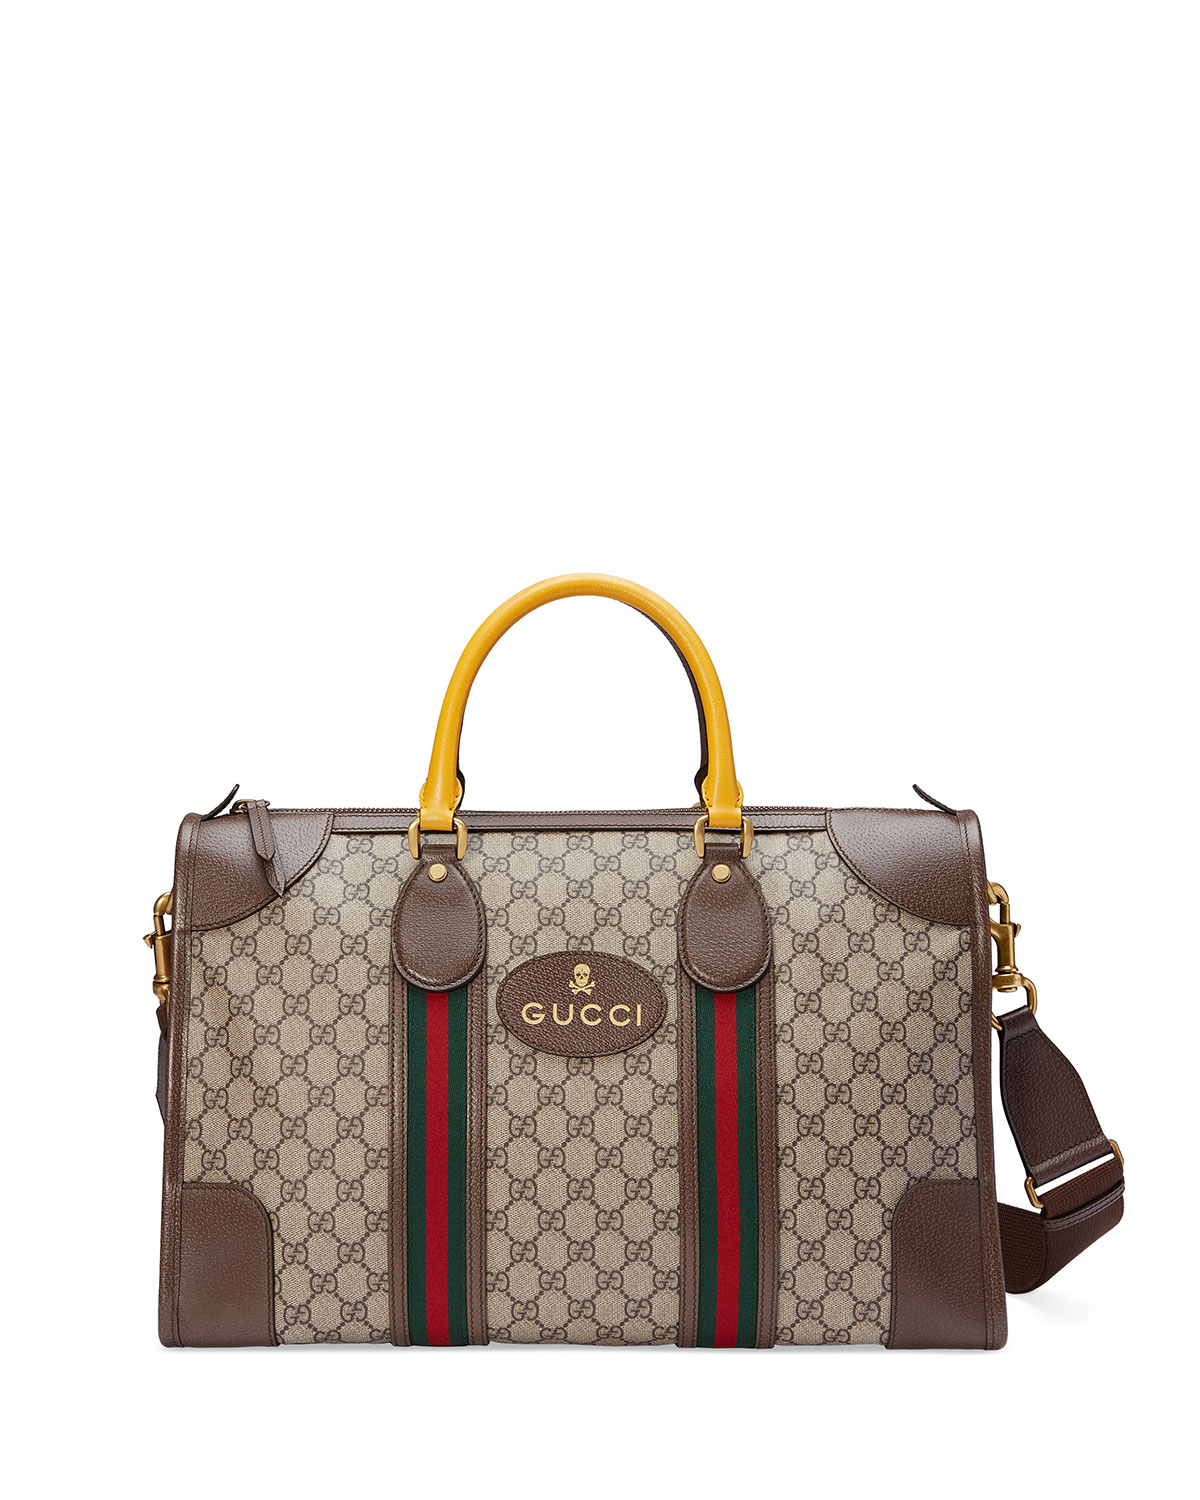 1aee8b60e89 Gucci Soft GG Supreme Duffel Bag with Web